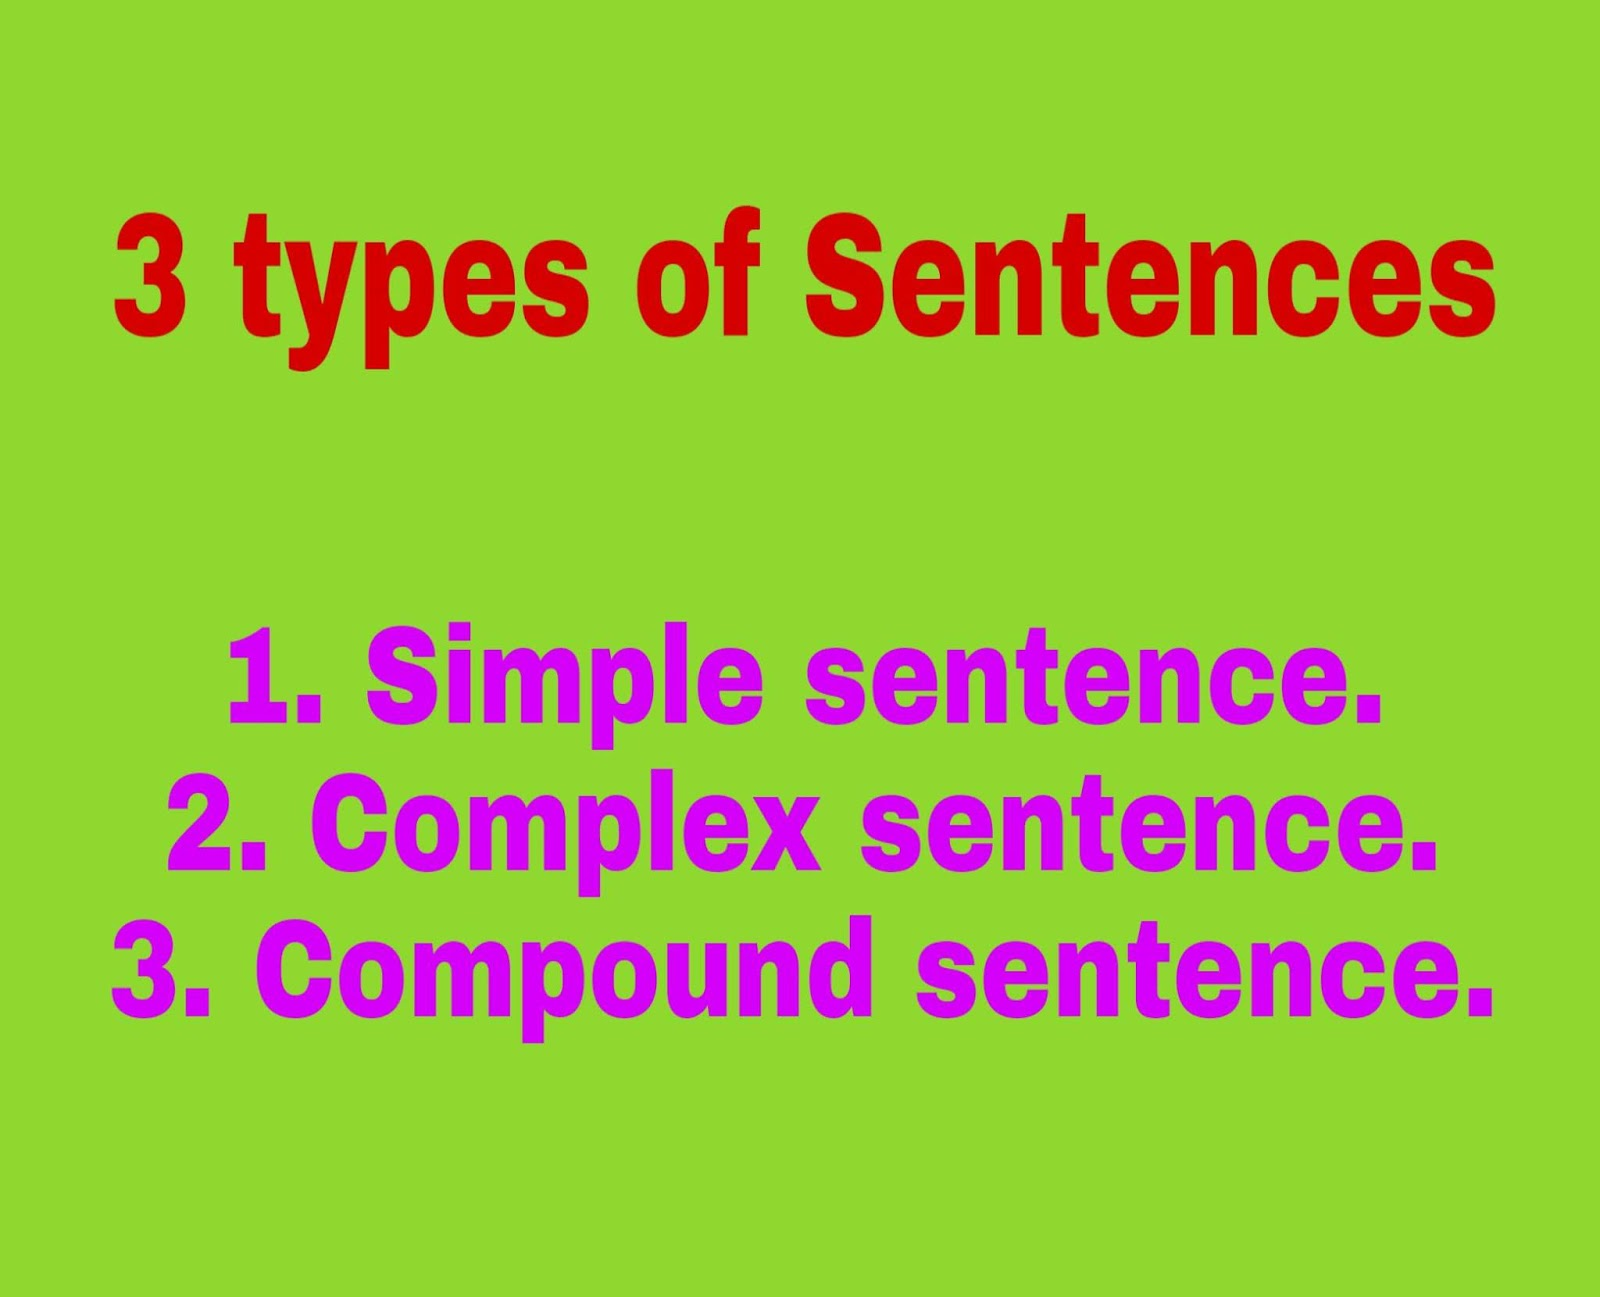 what are the 3 types of sentences